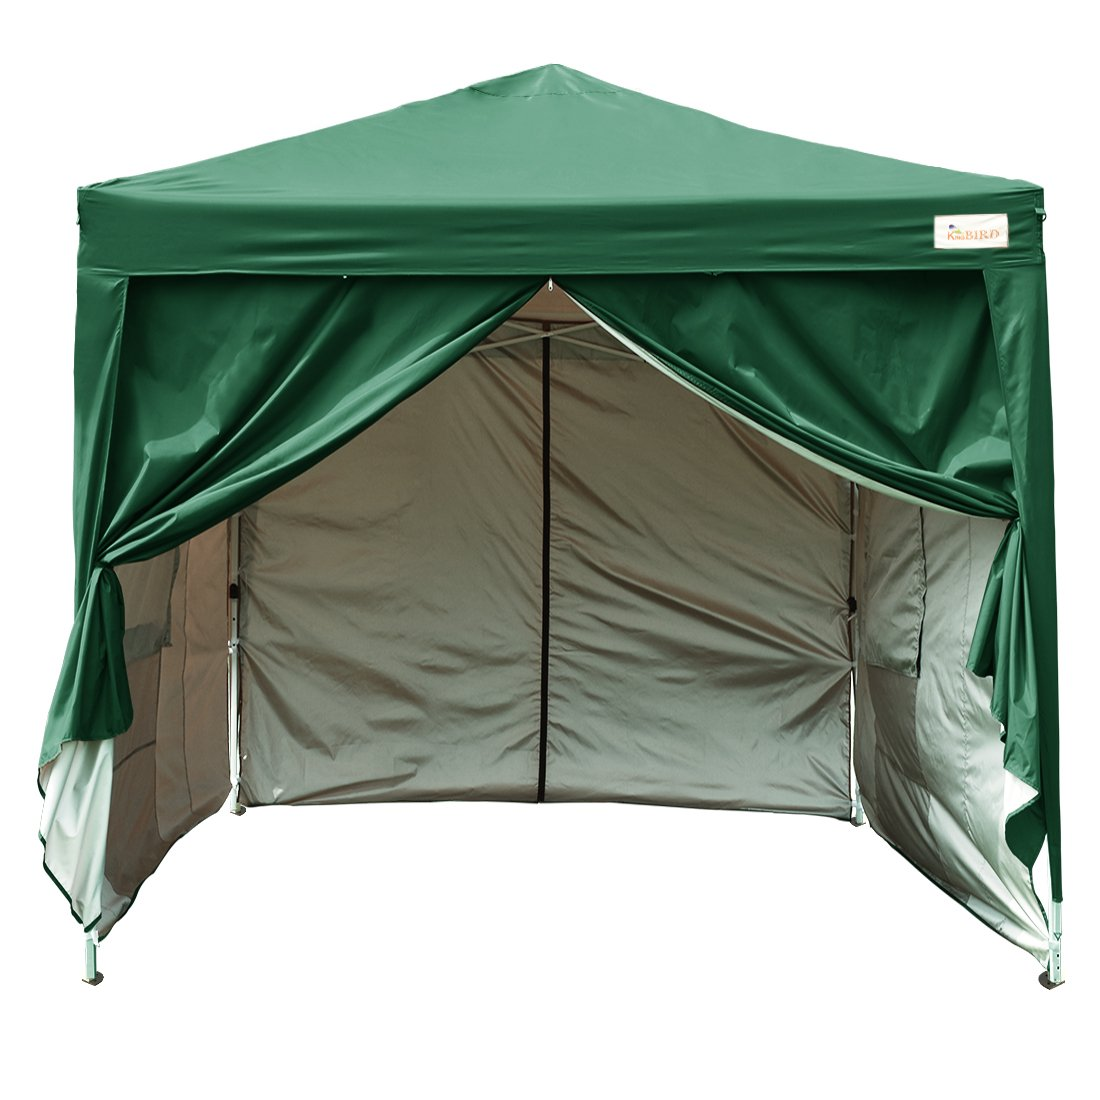 Kingbird 10 x 10 ft Easy Pop up Canopy Waterproof Party Tent 4 Removable Walls Mesh Windows with Carry Bag-7 Colors (Green)